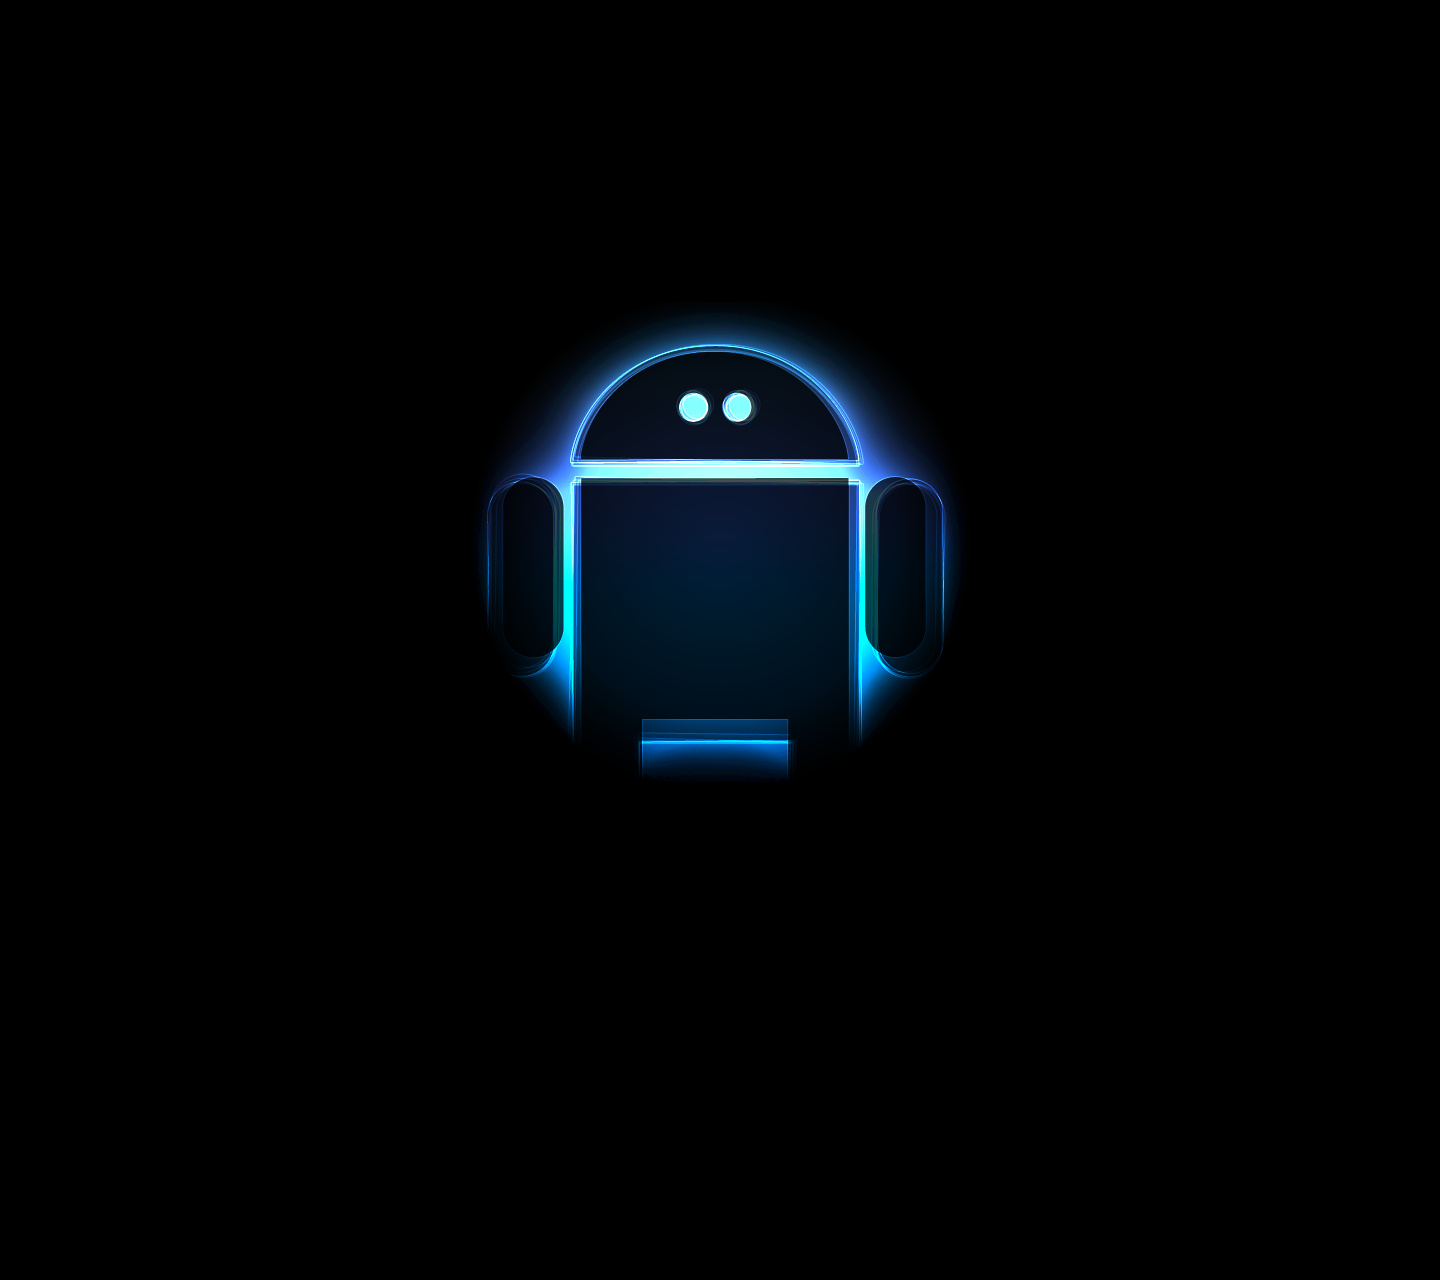 Androids in the dark cool wallpaper